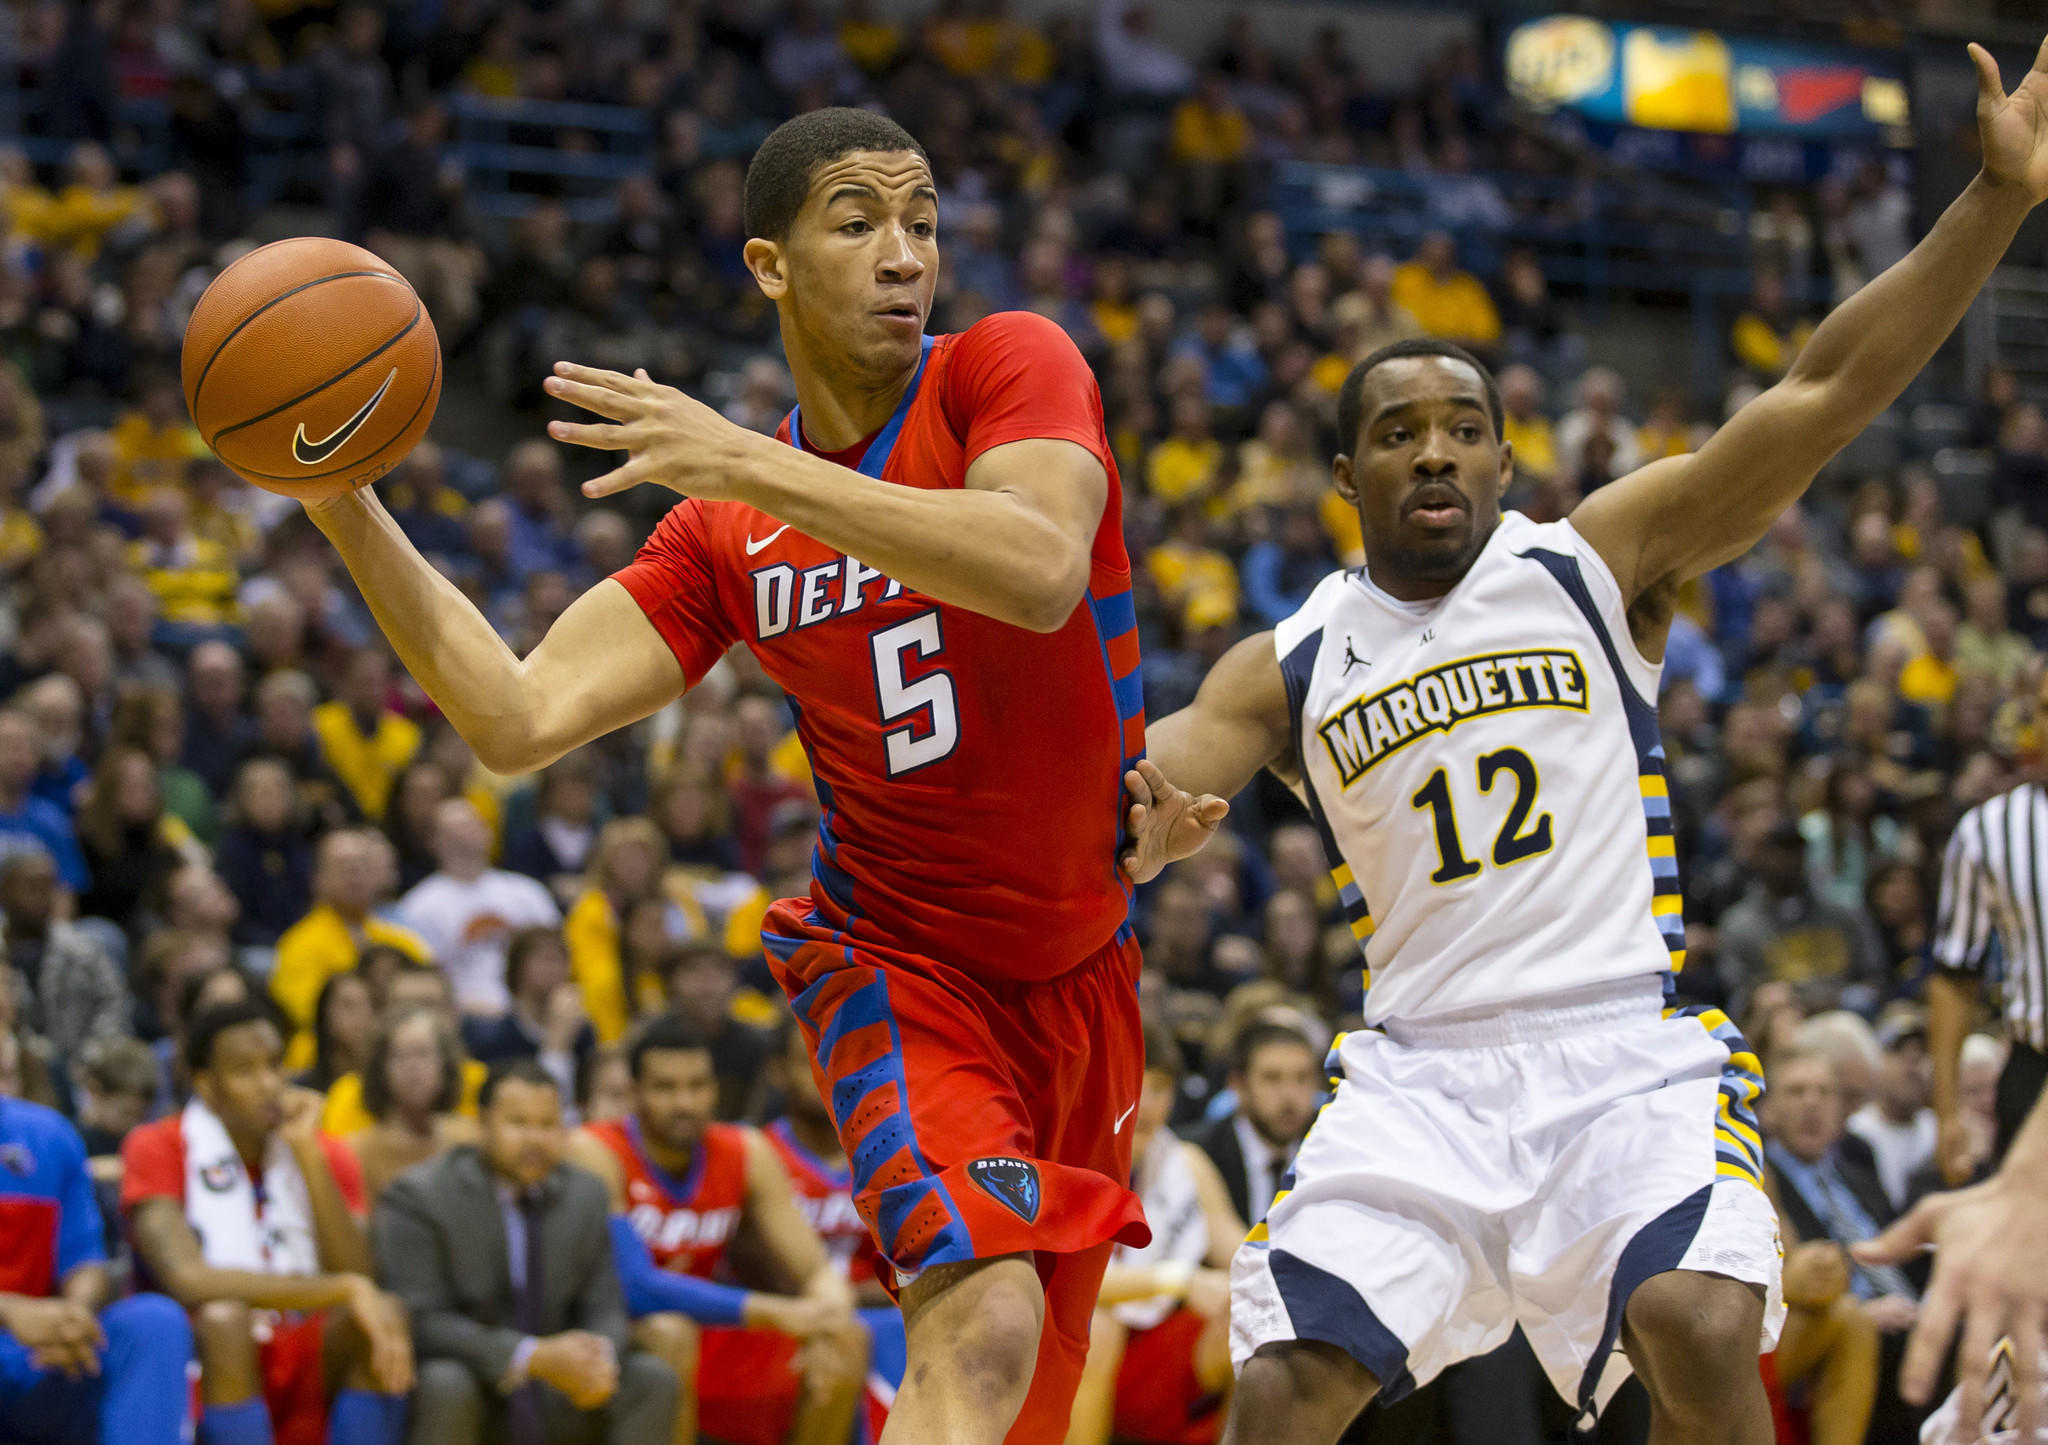 DePaul's Billy Garrett Jr. passes the ball in front of Marquette's Derrick Wilson during the second half at BMO Harris Bradley Center.